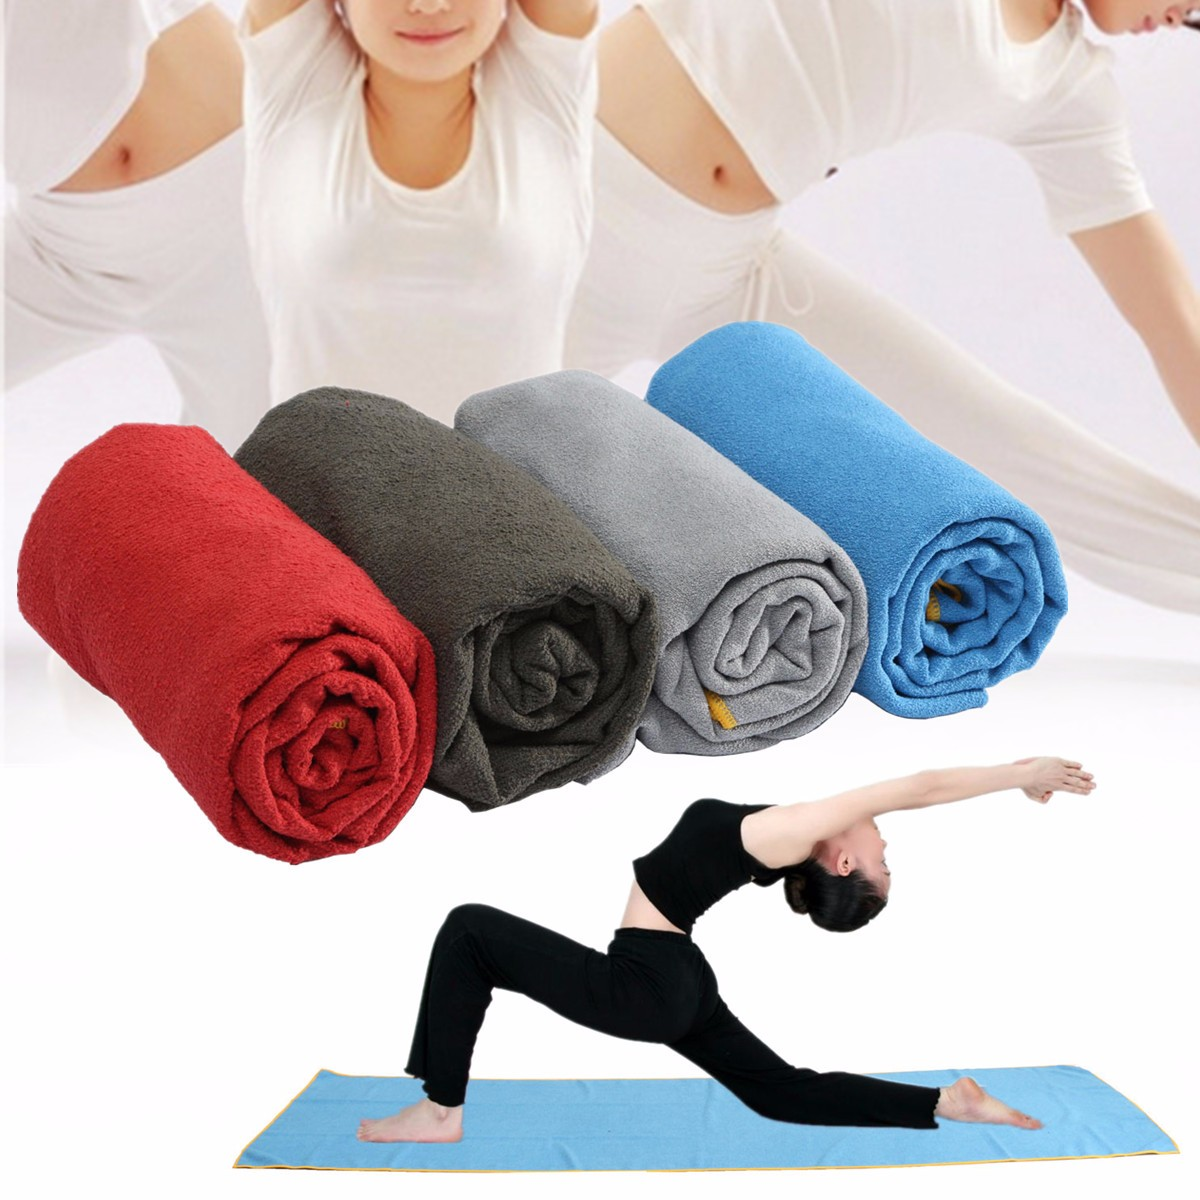 72.05x24.80'' Non-Slip Soft Microfiber Travel Exercise Fitness Yoga microfibertowel Mat Cover Towel Blanket with Carry Bag 183x63cm